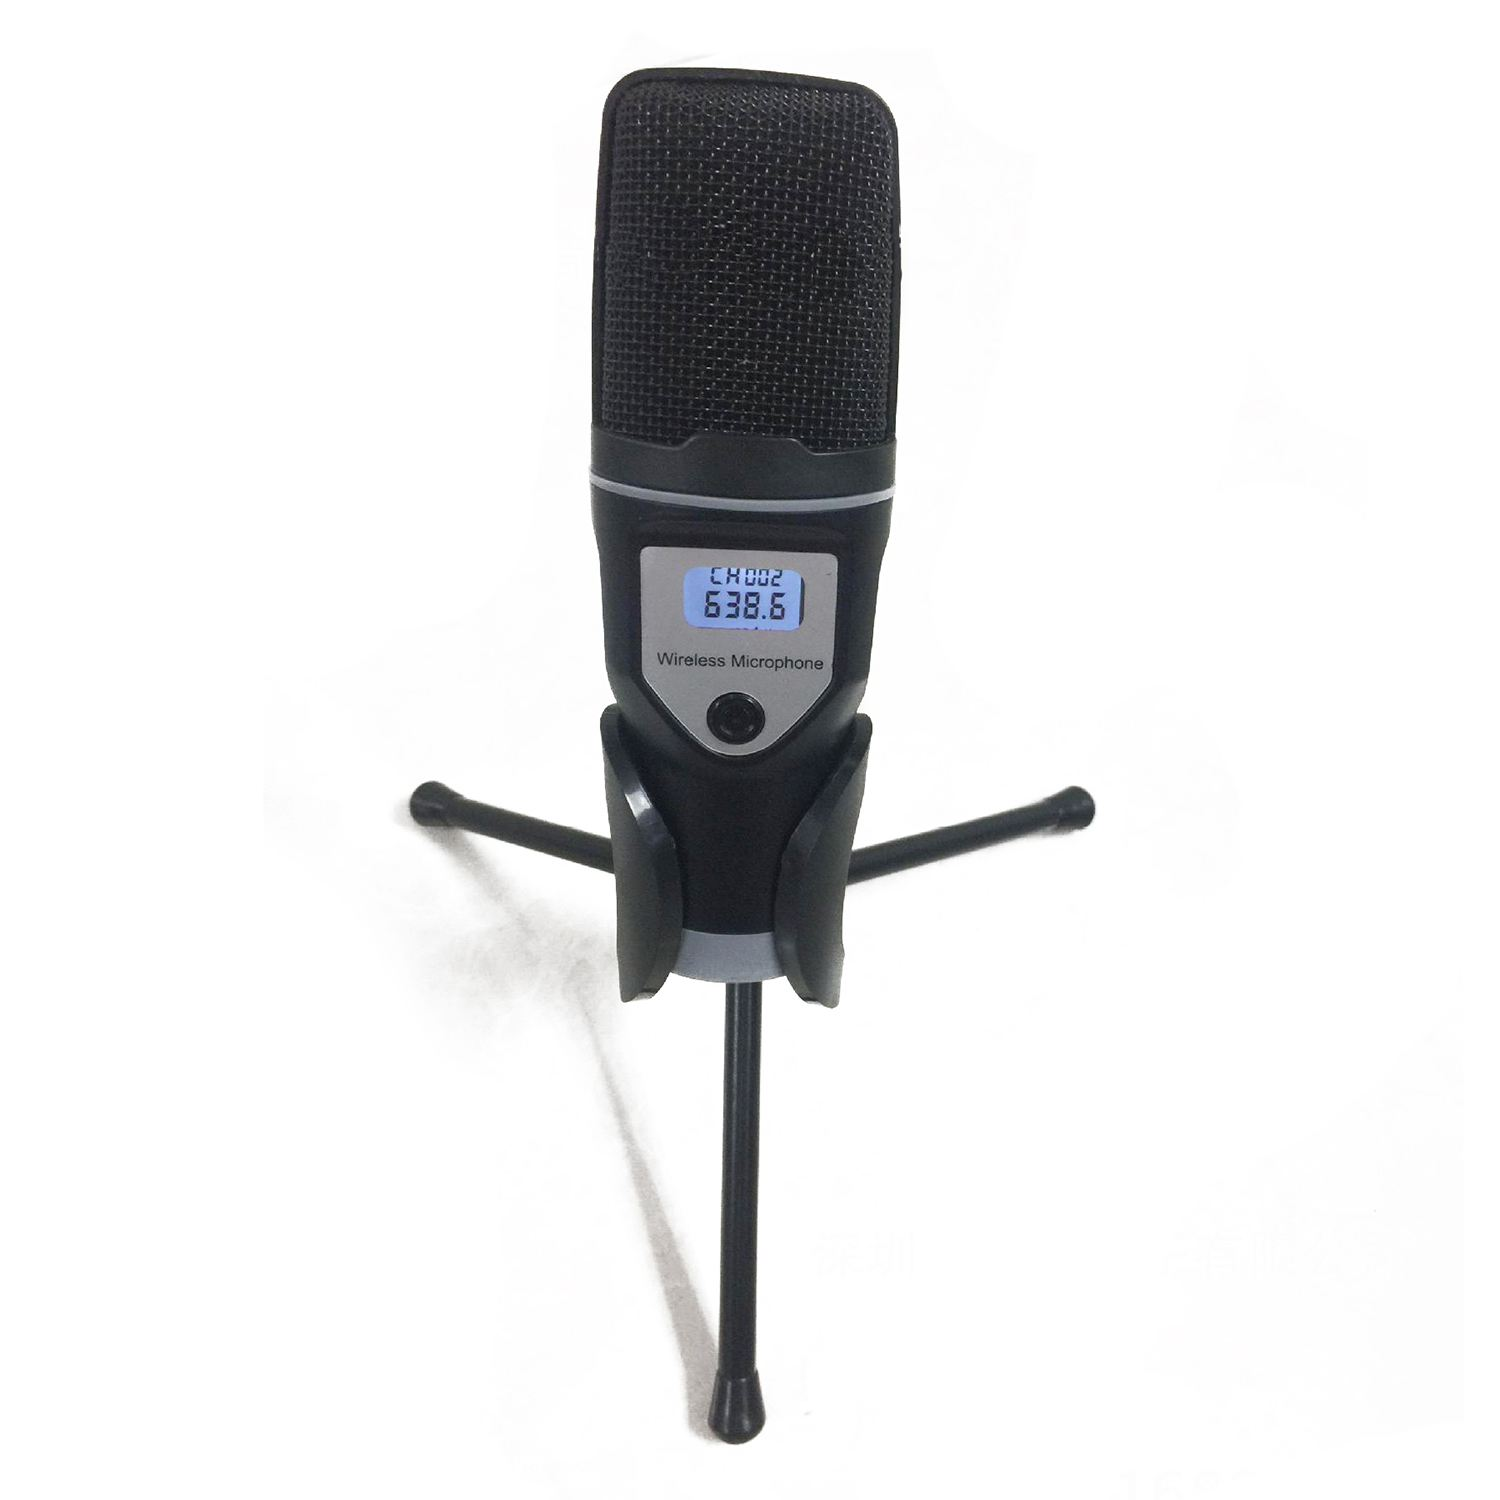 uf6 usb universal karaoke mic microphone wireless for tv computer audio k song conference plug. Black Bedroom Furniture Sets. Home Design Ideas